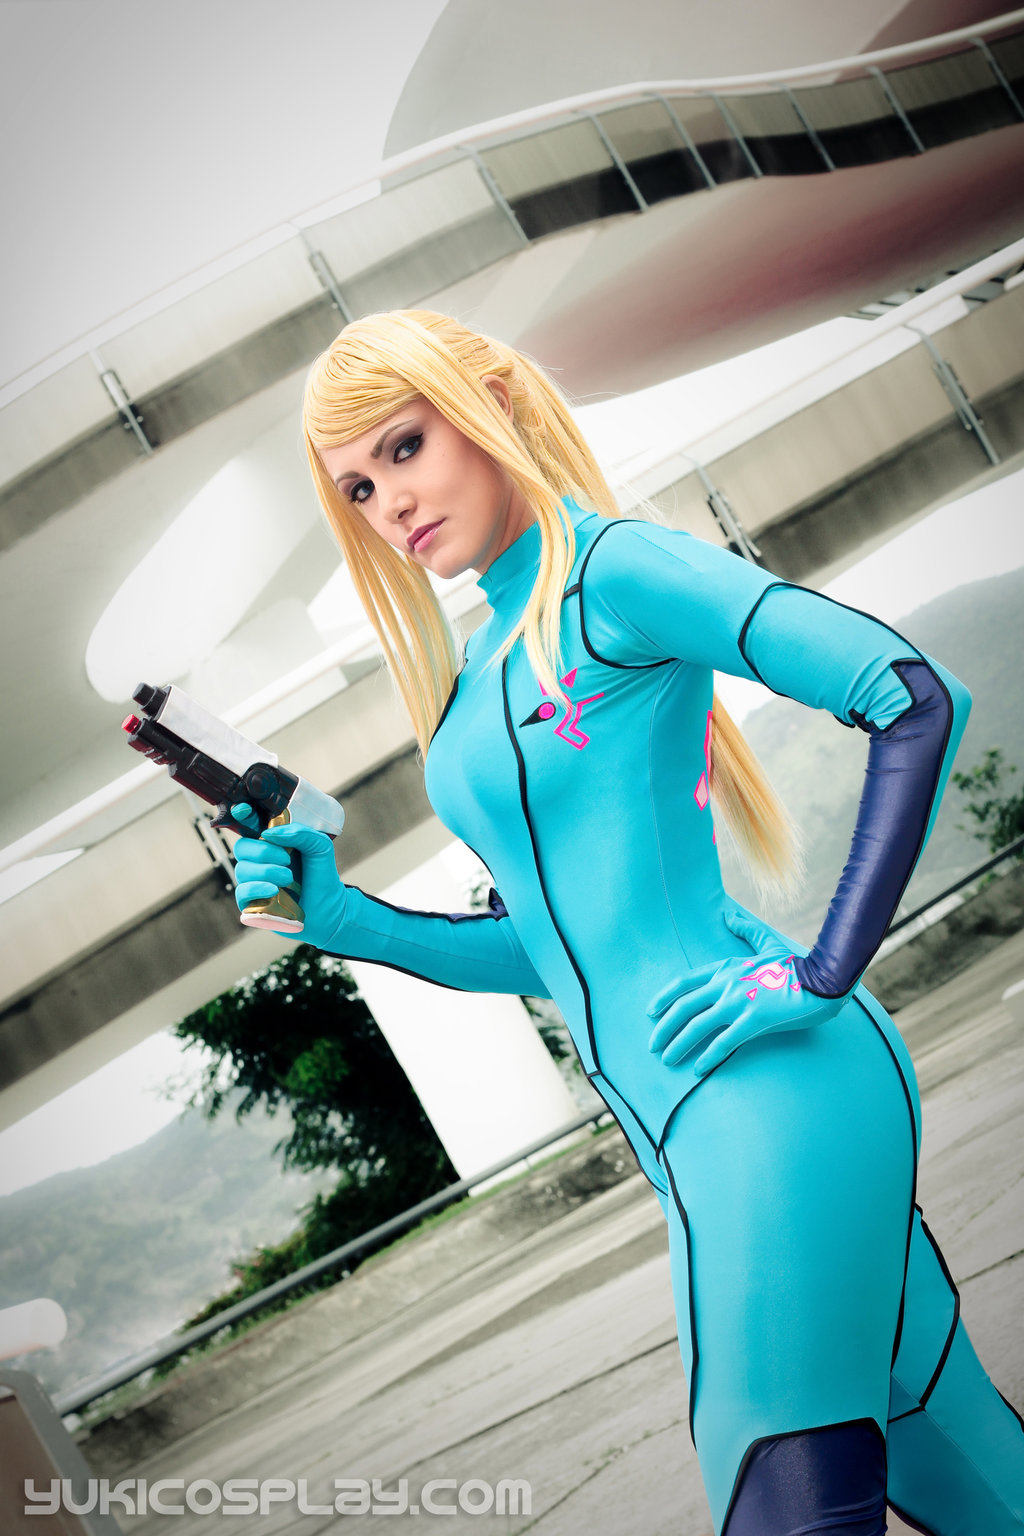 Zero Suit Samus · Yuki Cosplay · Online Store Powered by Storenvy: yukicosplay.storenvy.com/products/10723641-zero-suit-samus